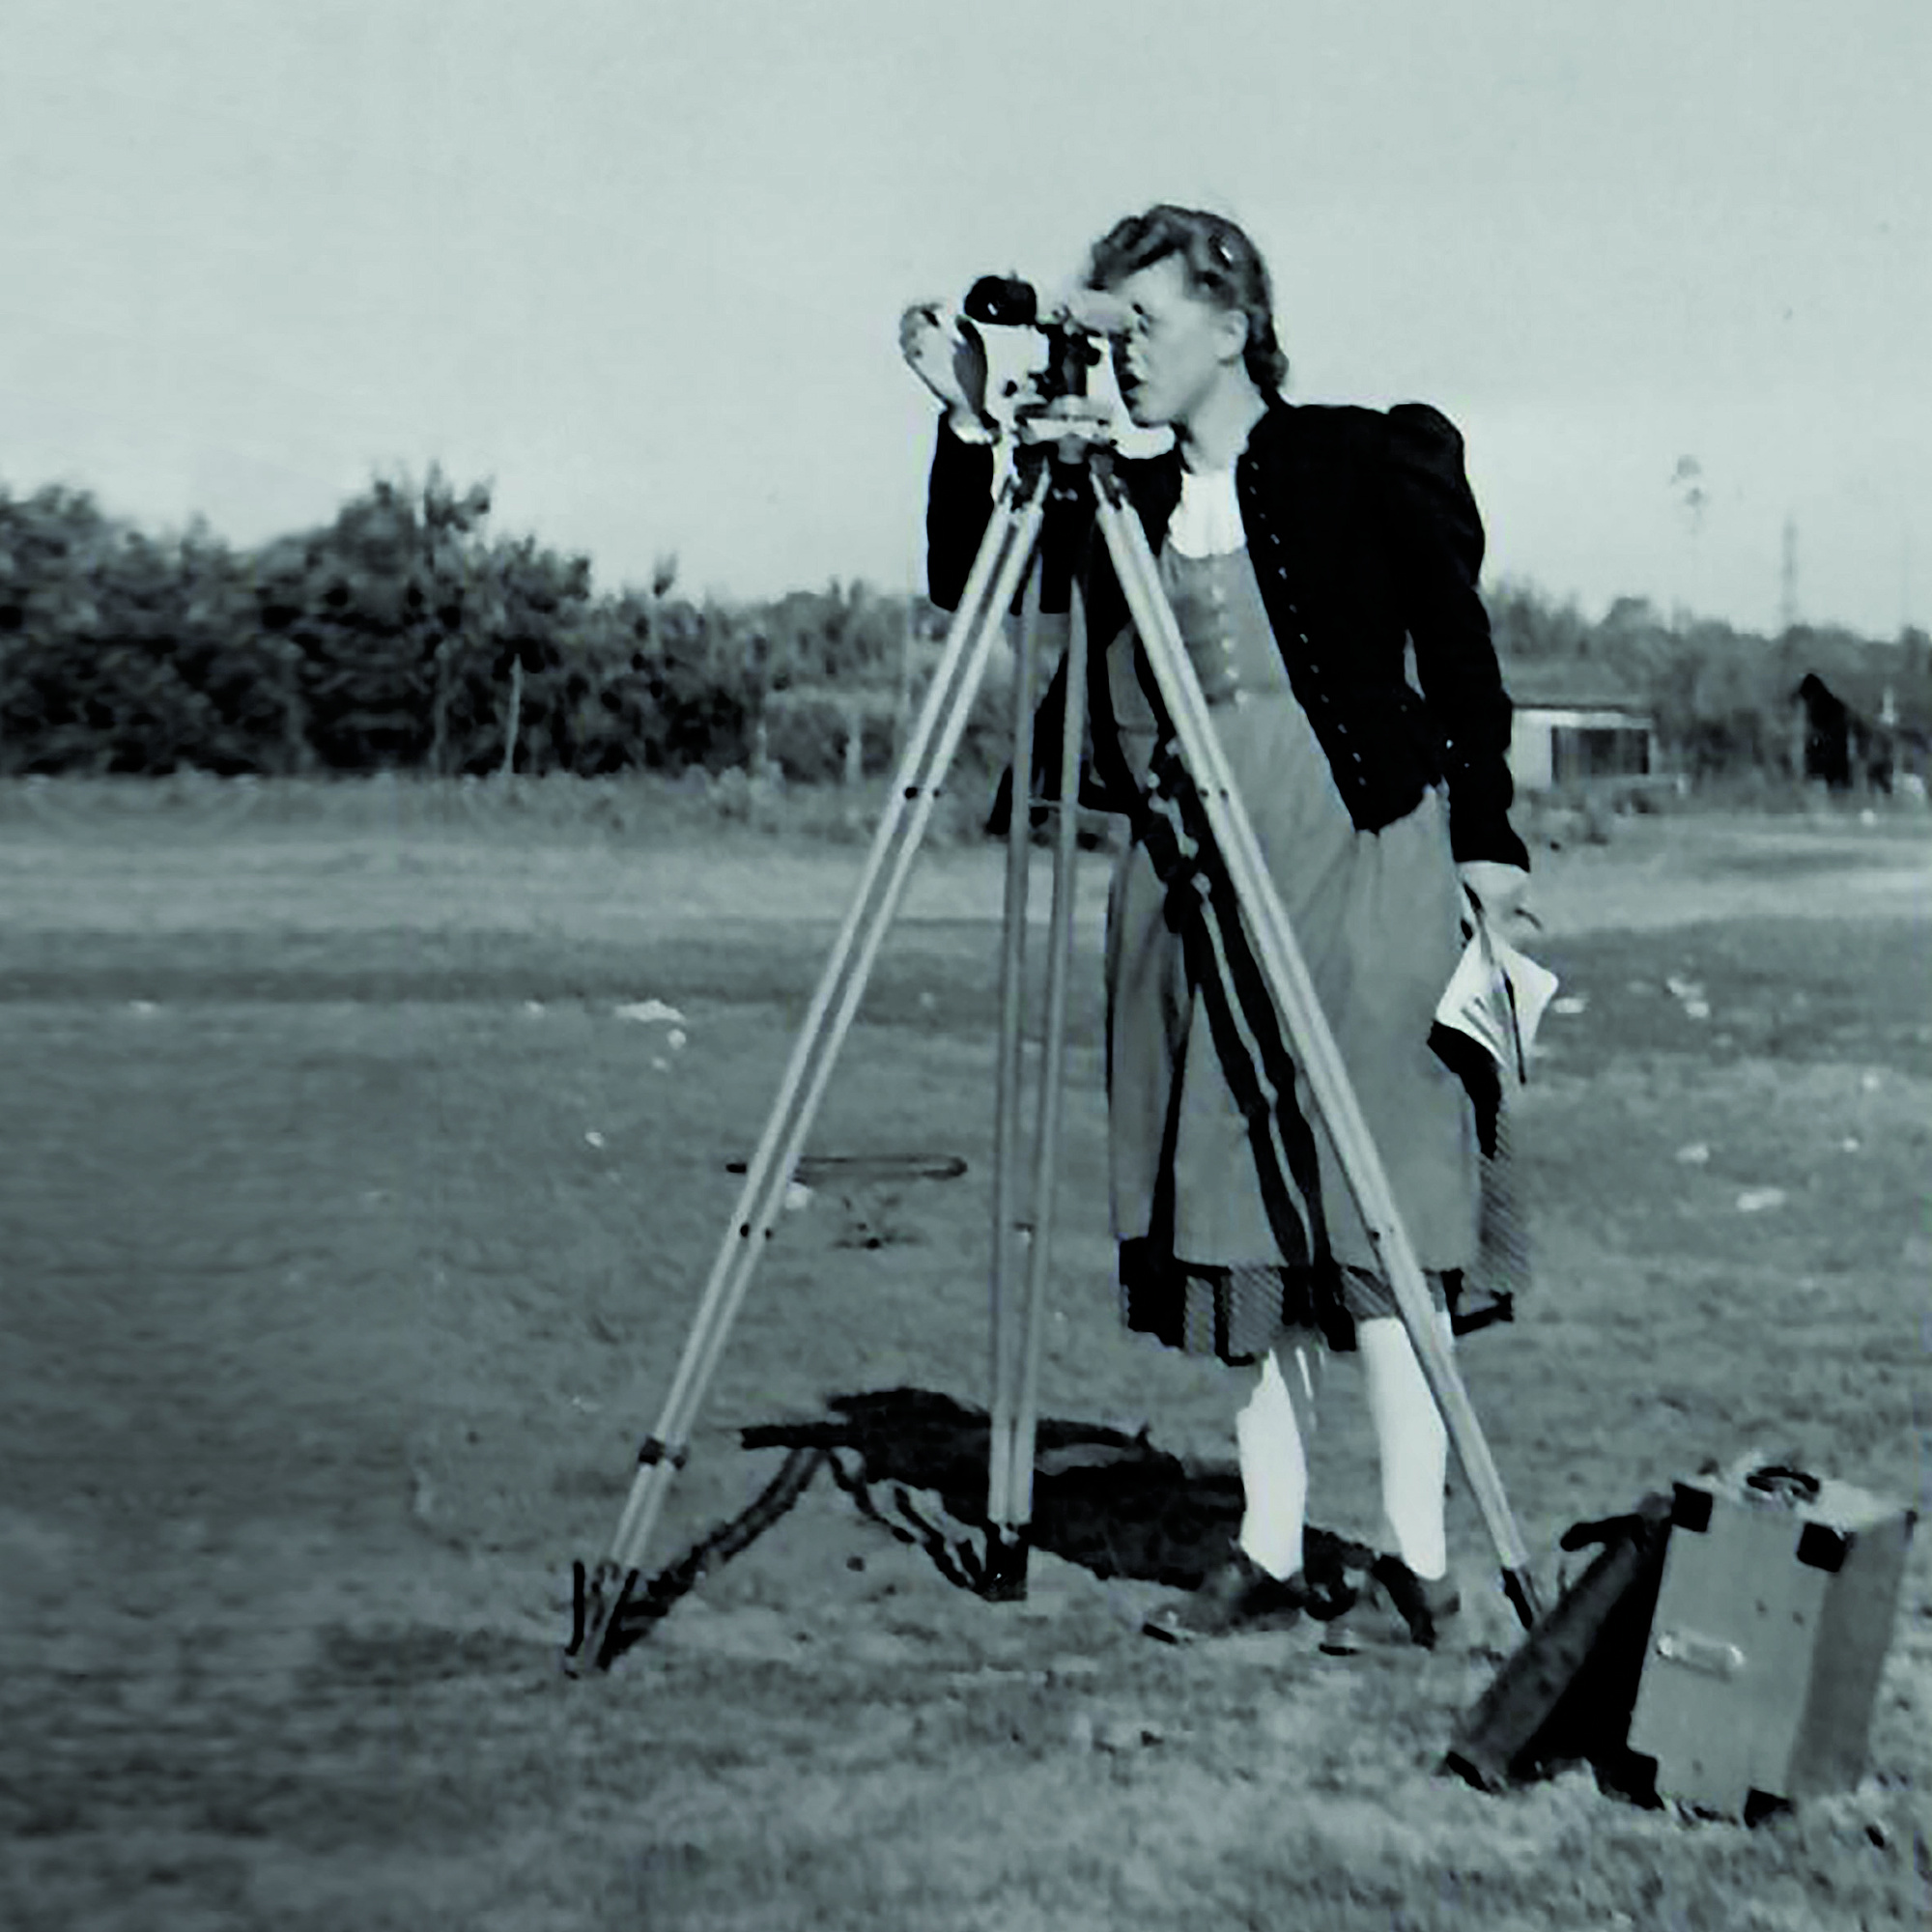 The black and white picture shows a woman at a surveying device.